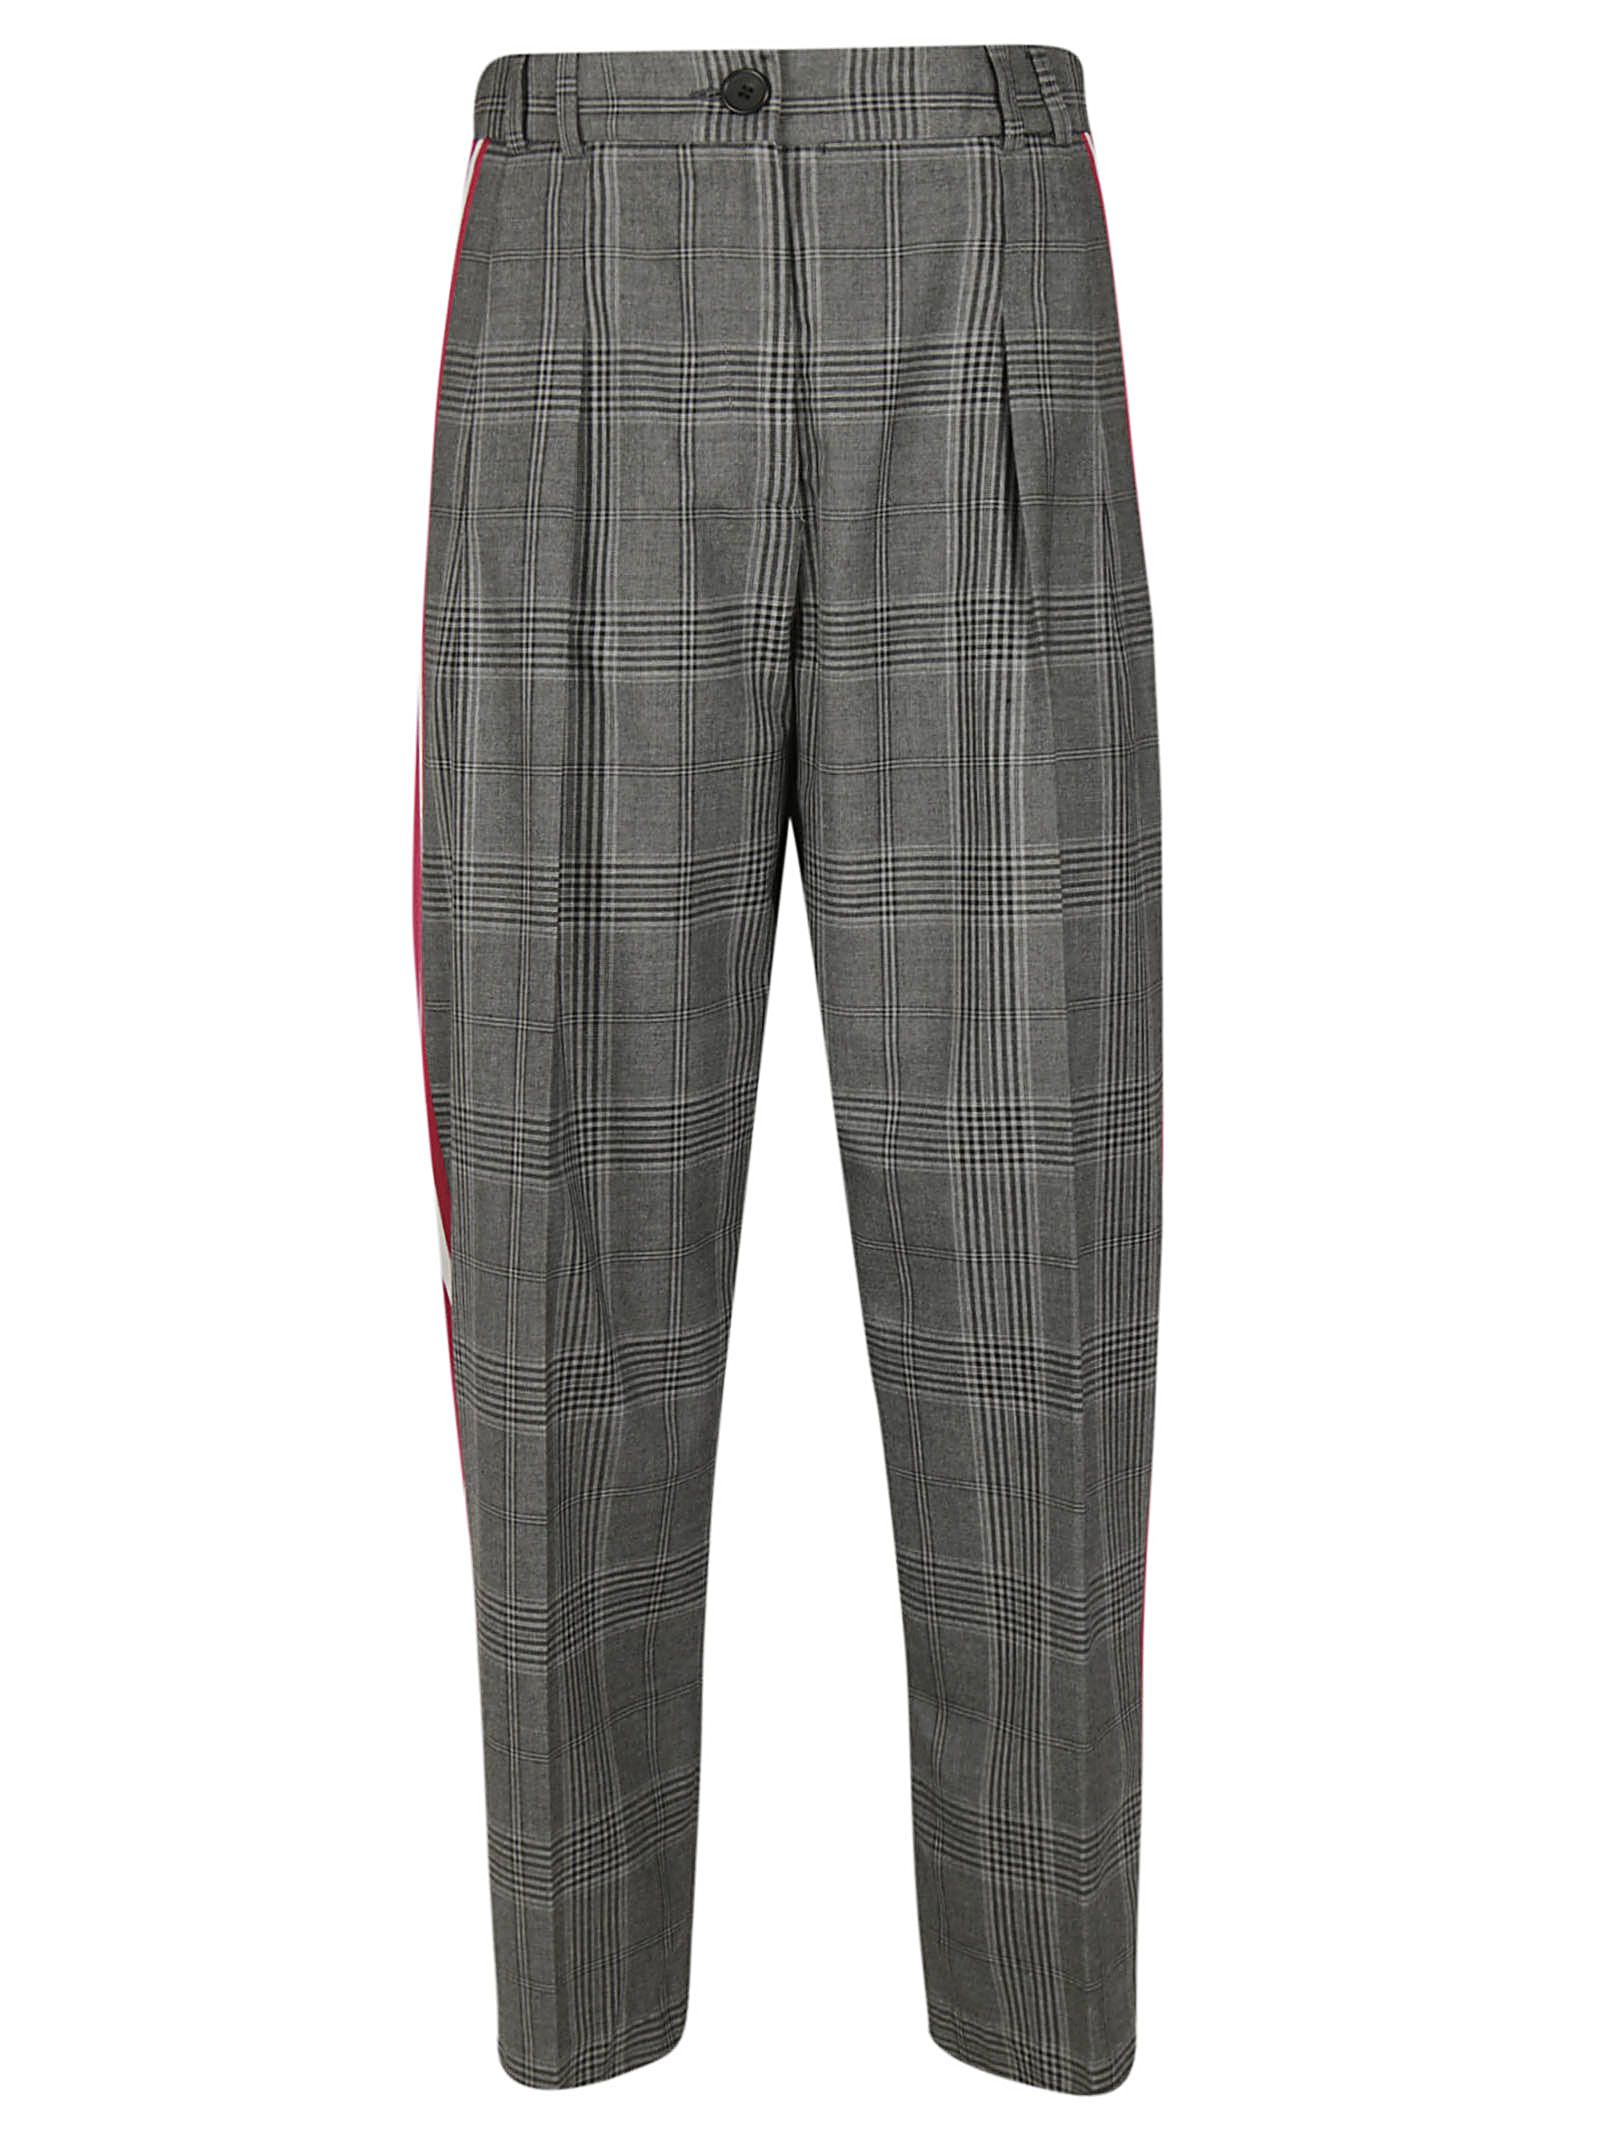 TARA JARMON Patterned Trousers in Grischinecl